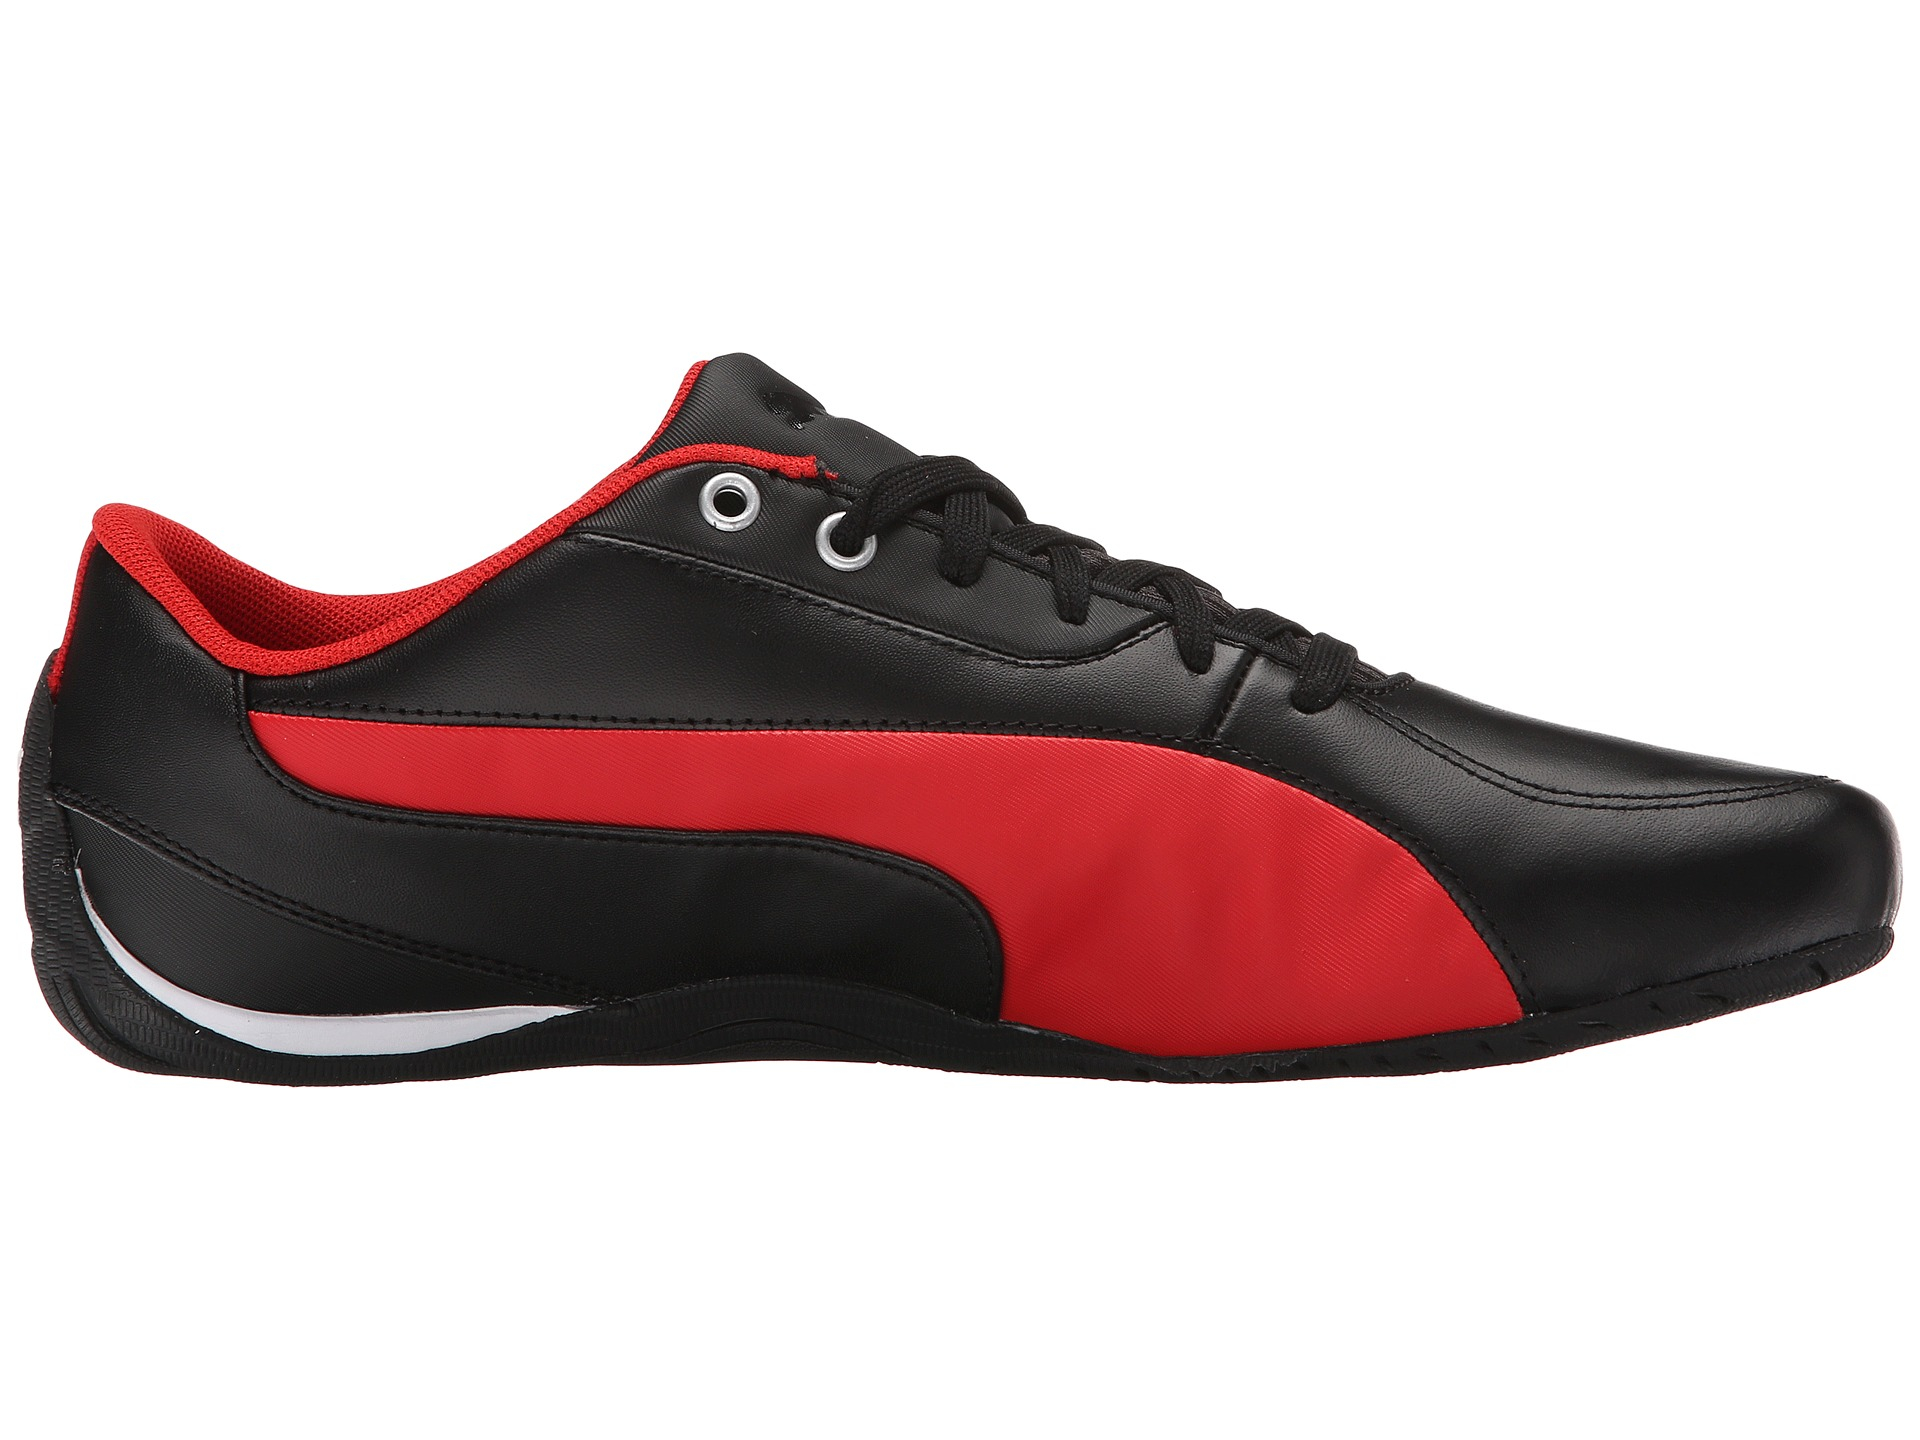 acc7470edd5 ... switzerland lyst puma drift cat 5 sf nm 2 in red for men 98bca d1f20